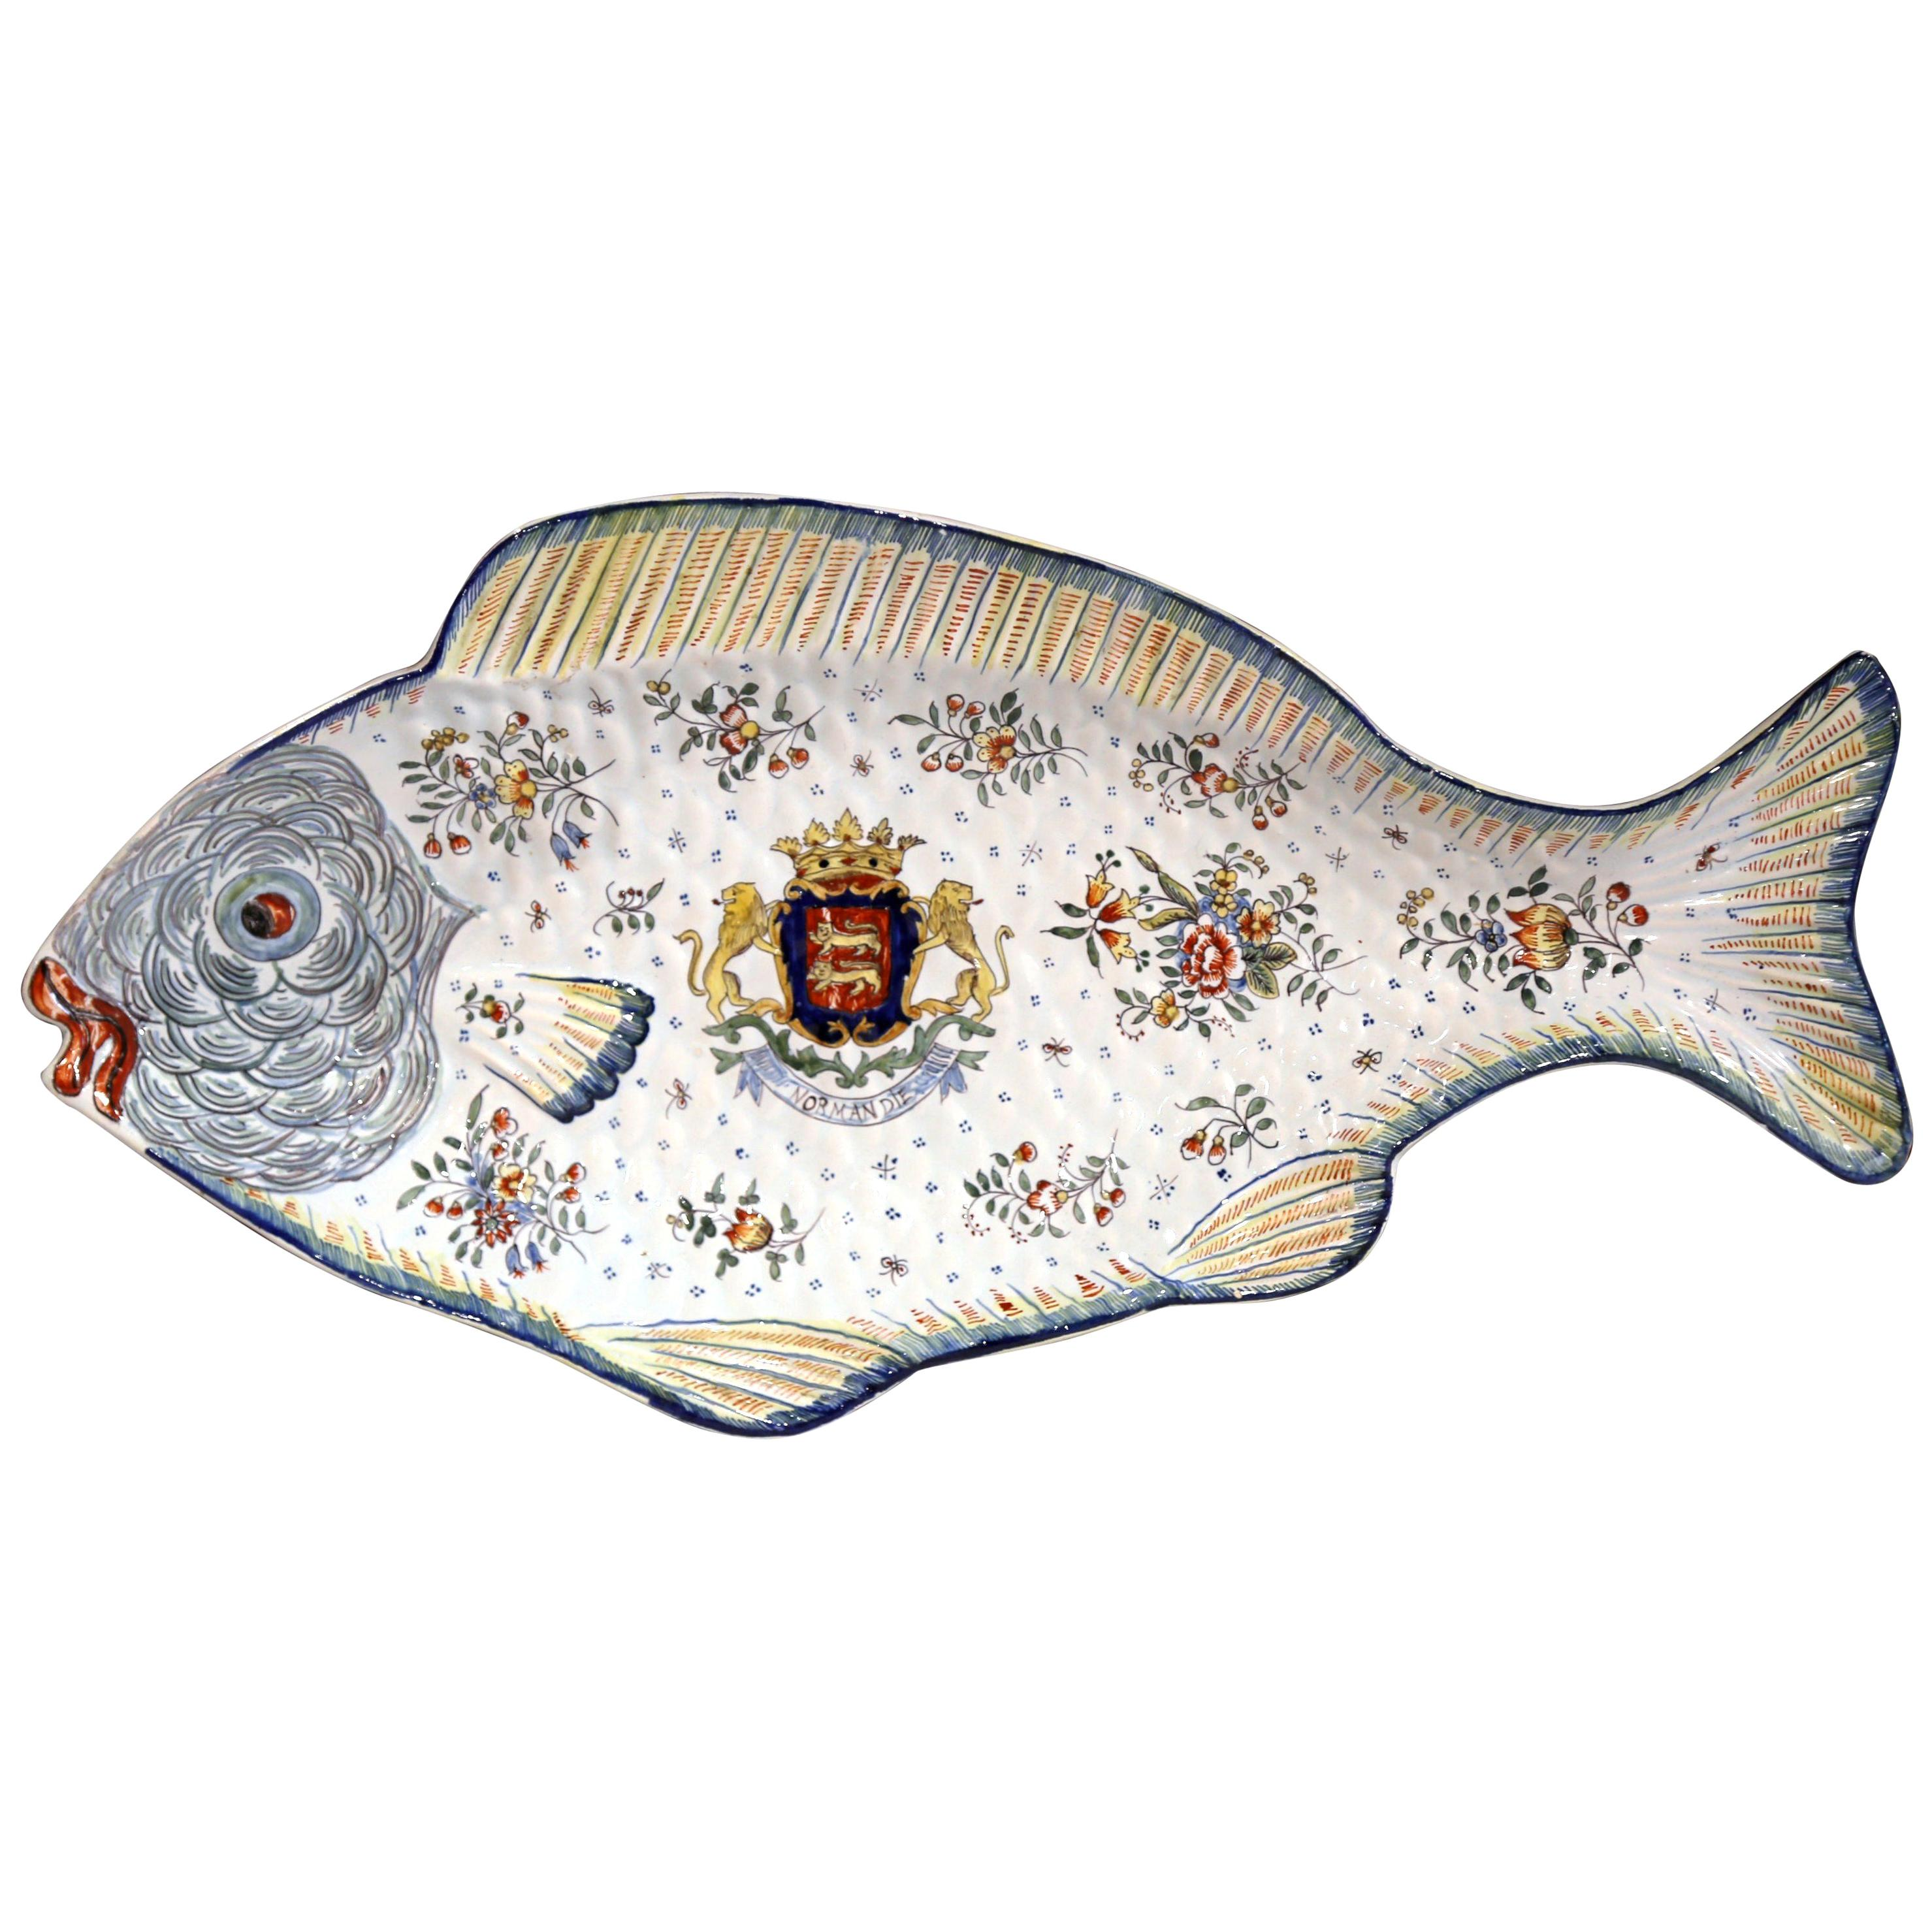 Early 20th Century French Hand Painted Faience Fish Platter from Normandy